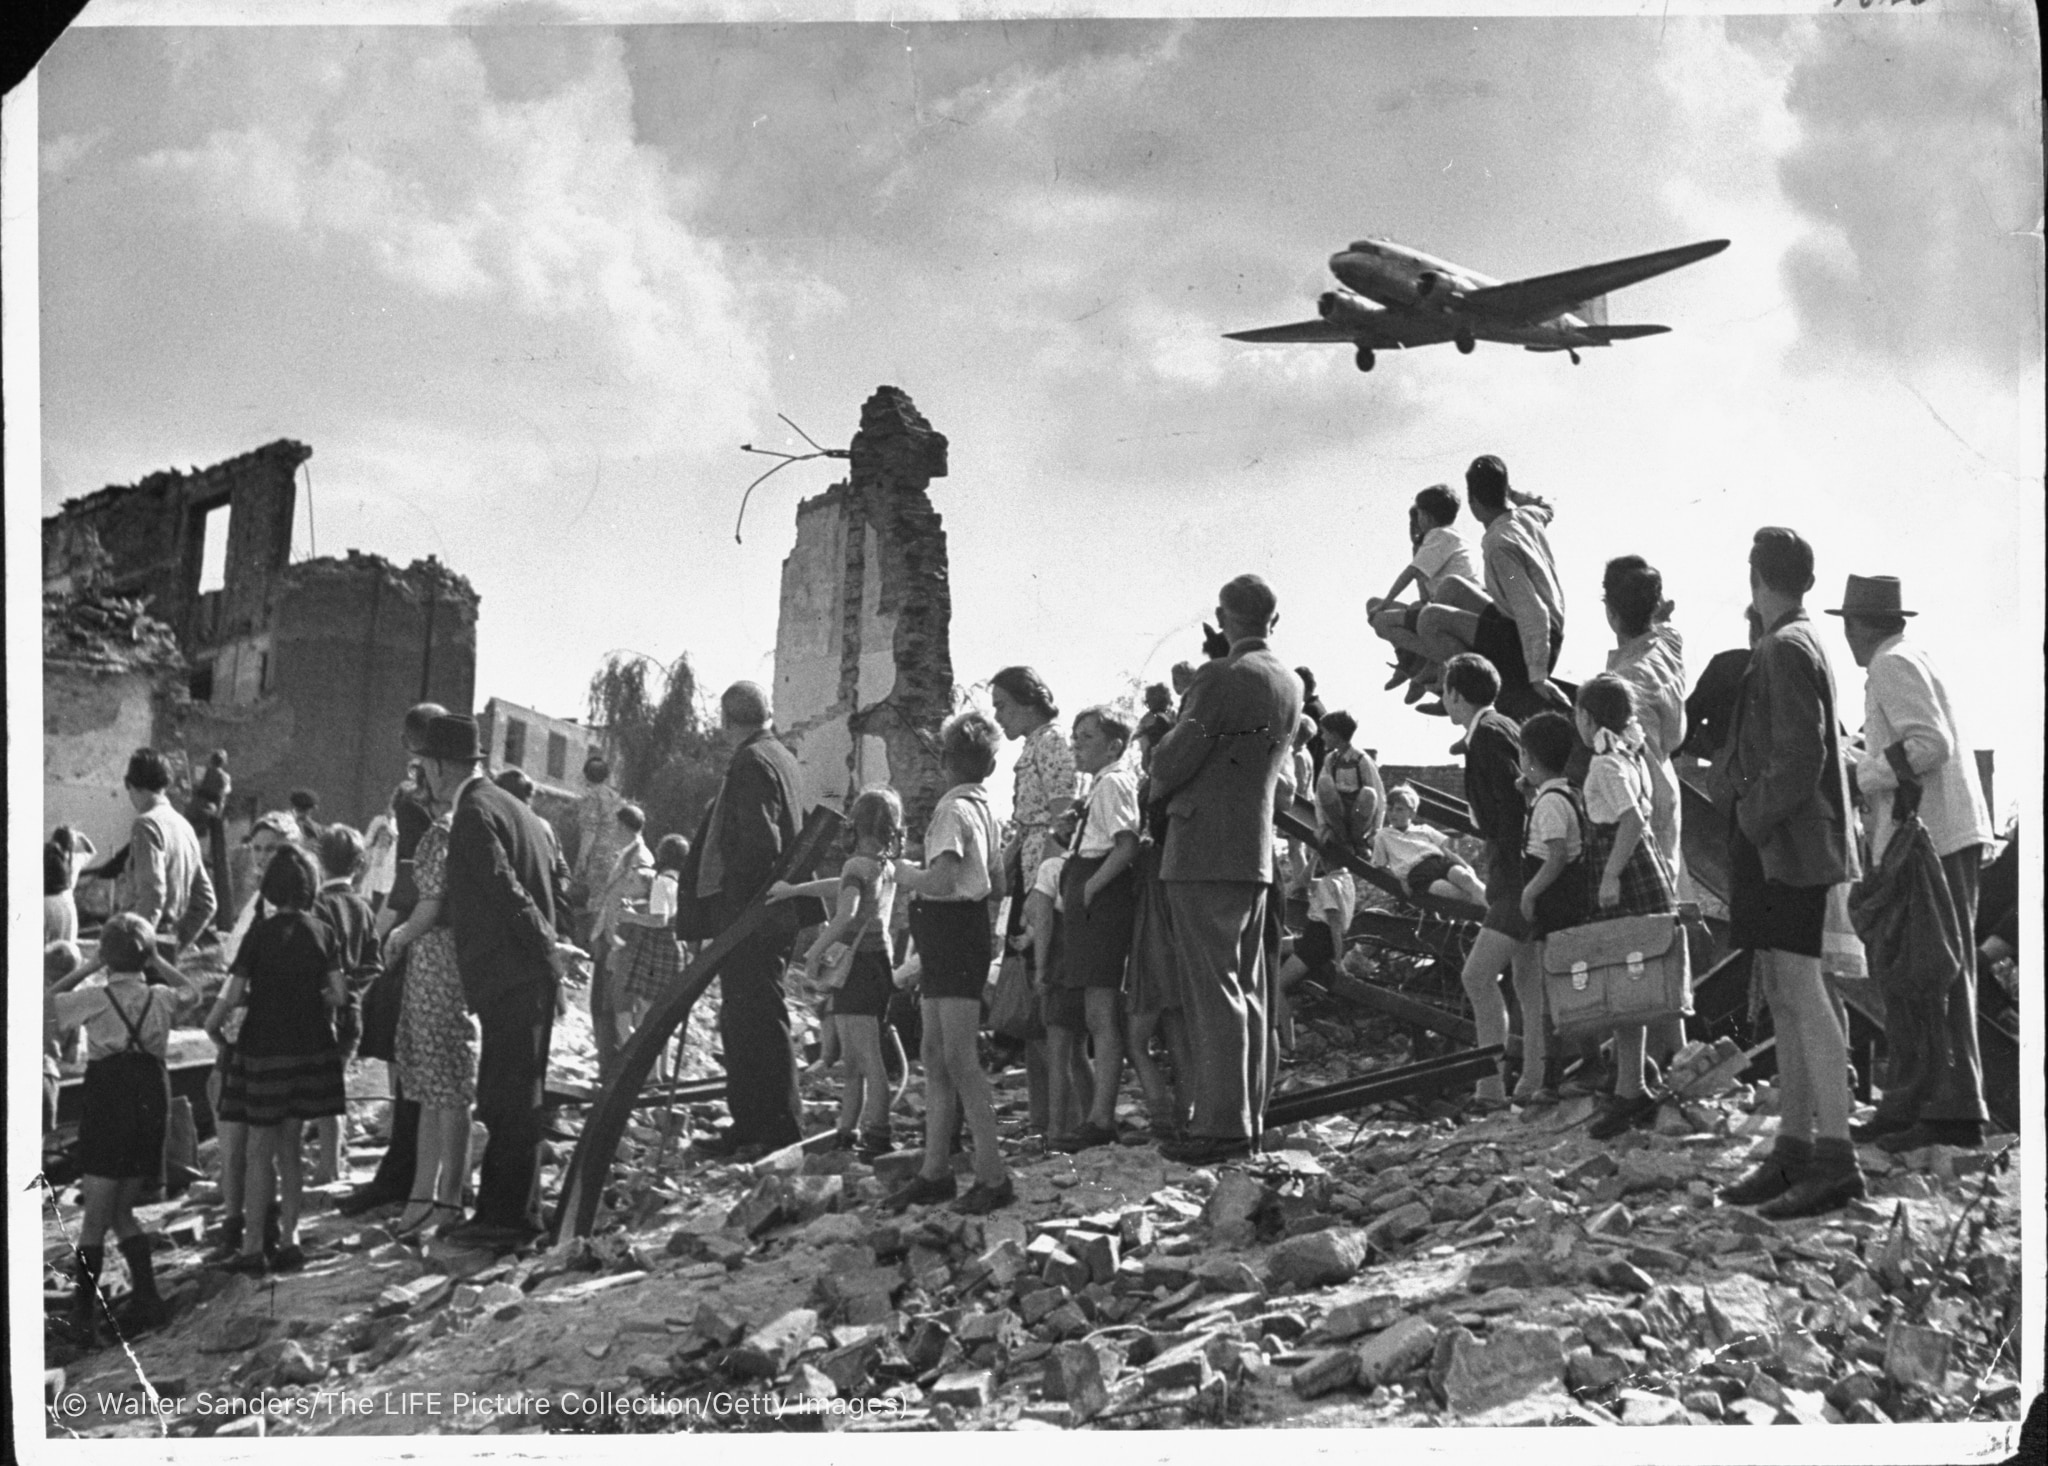 Aircraft overhead, people in ruins looking up at it (© Walter Sanders/LIFE Picture Collection/Getty Images)